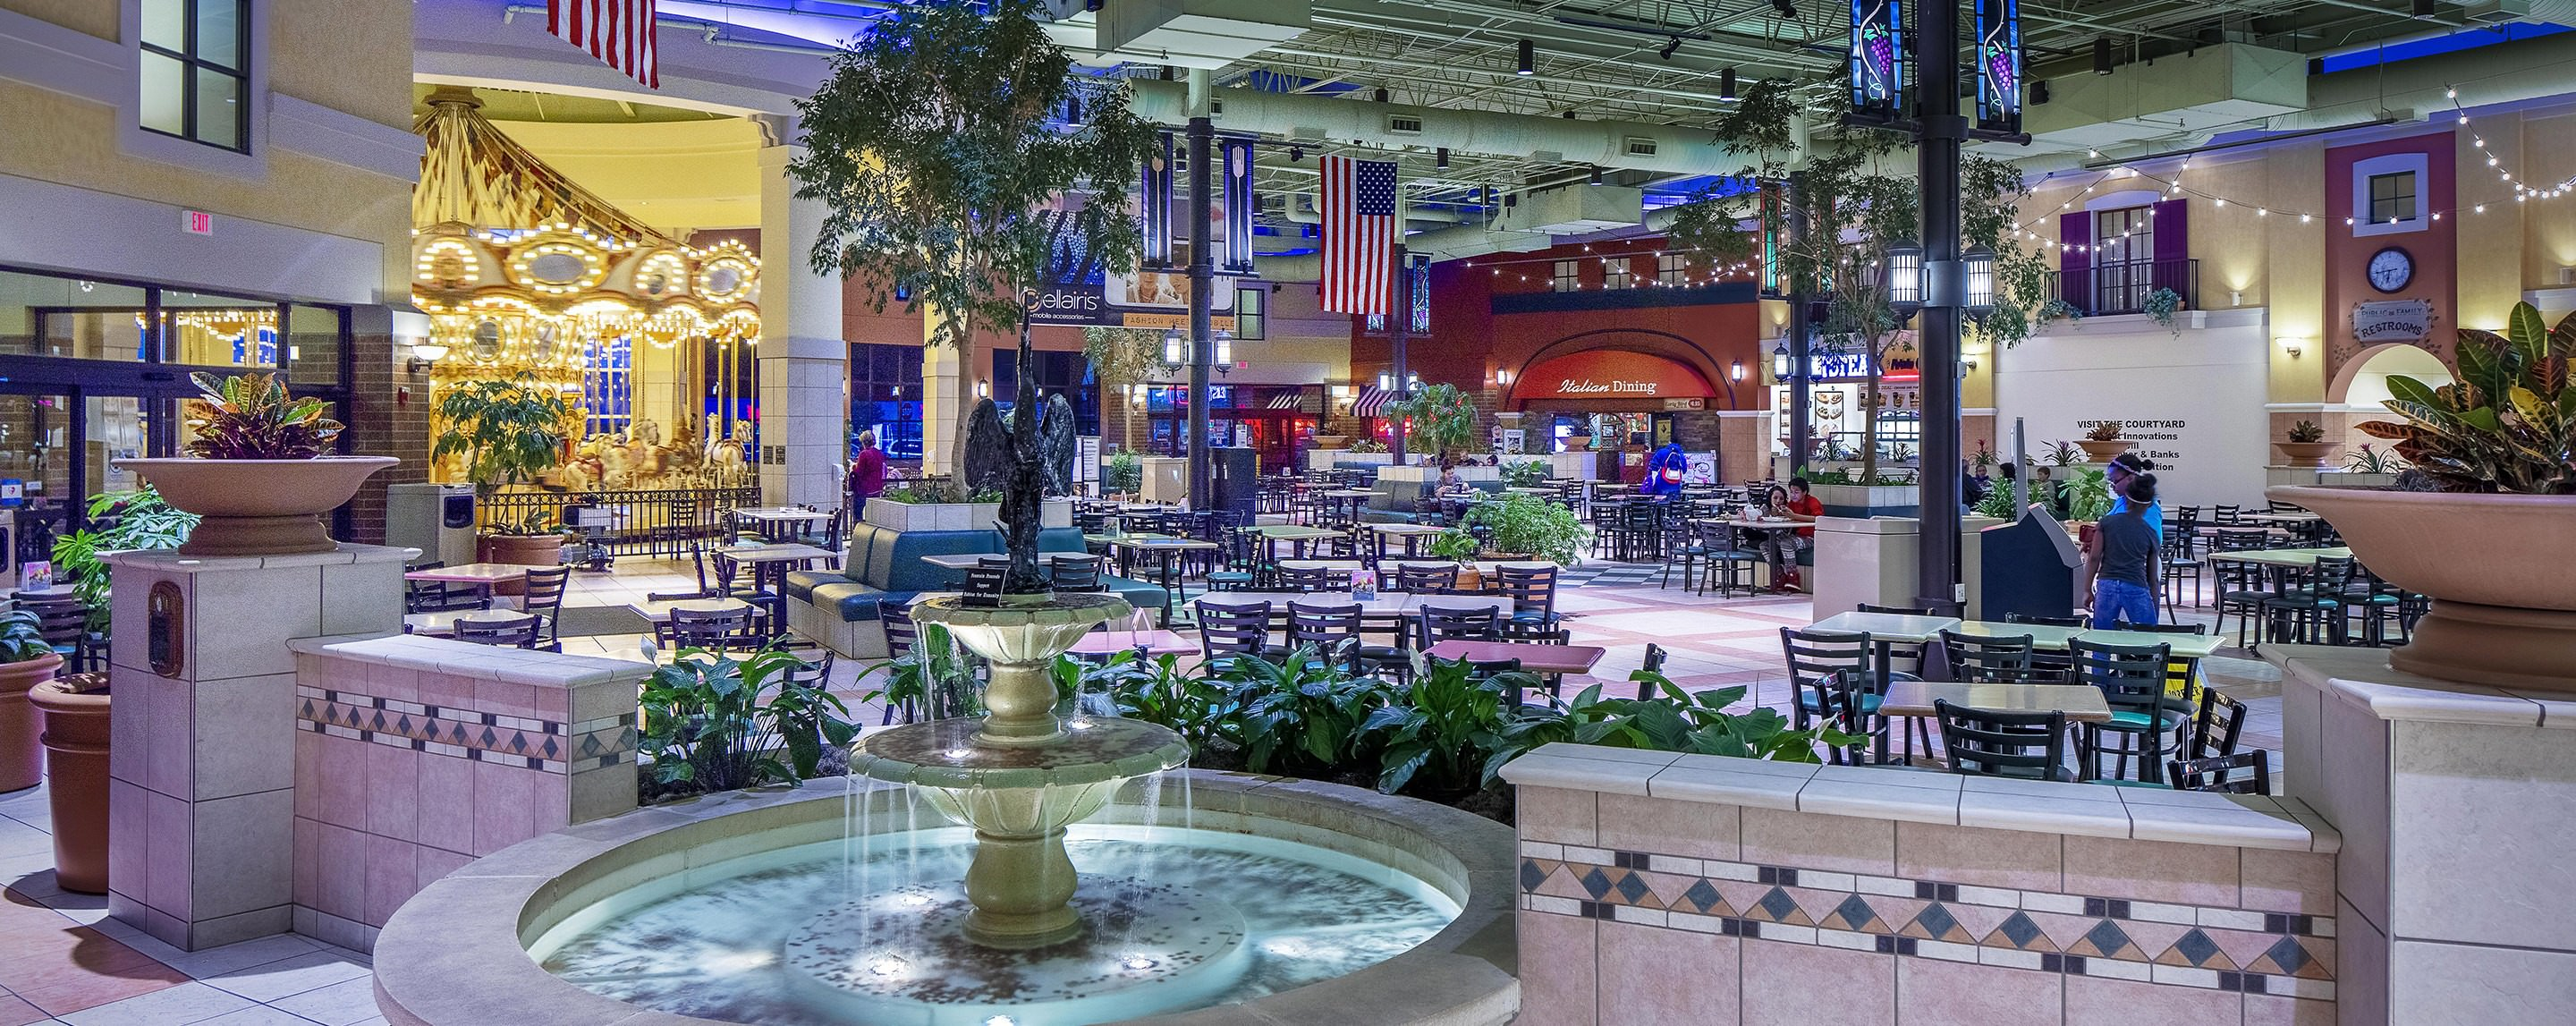 Stores: This center has 4 outlet stores Champaign Outlets Our Champaign outlet mall guide has all the outlet malls in and around Champaign, helping you discover the most convenient outlet shopping according to your location and travel plans.